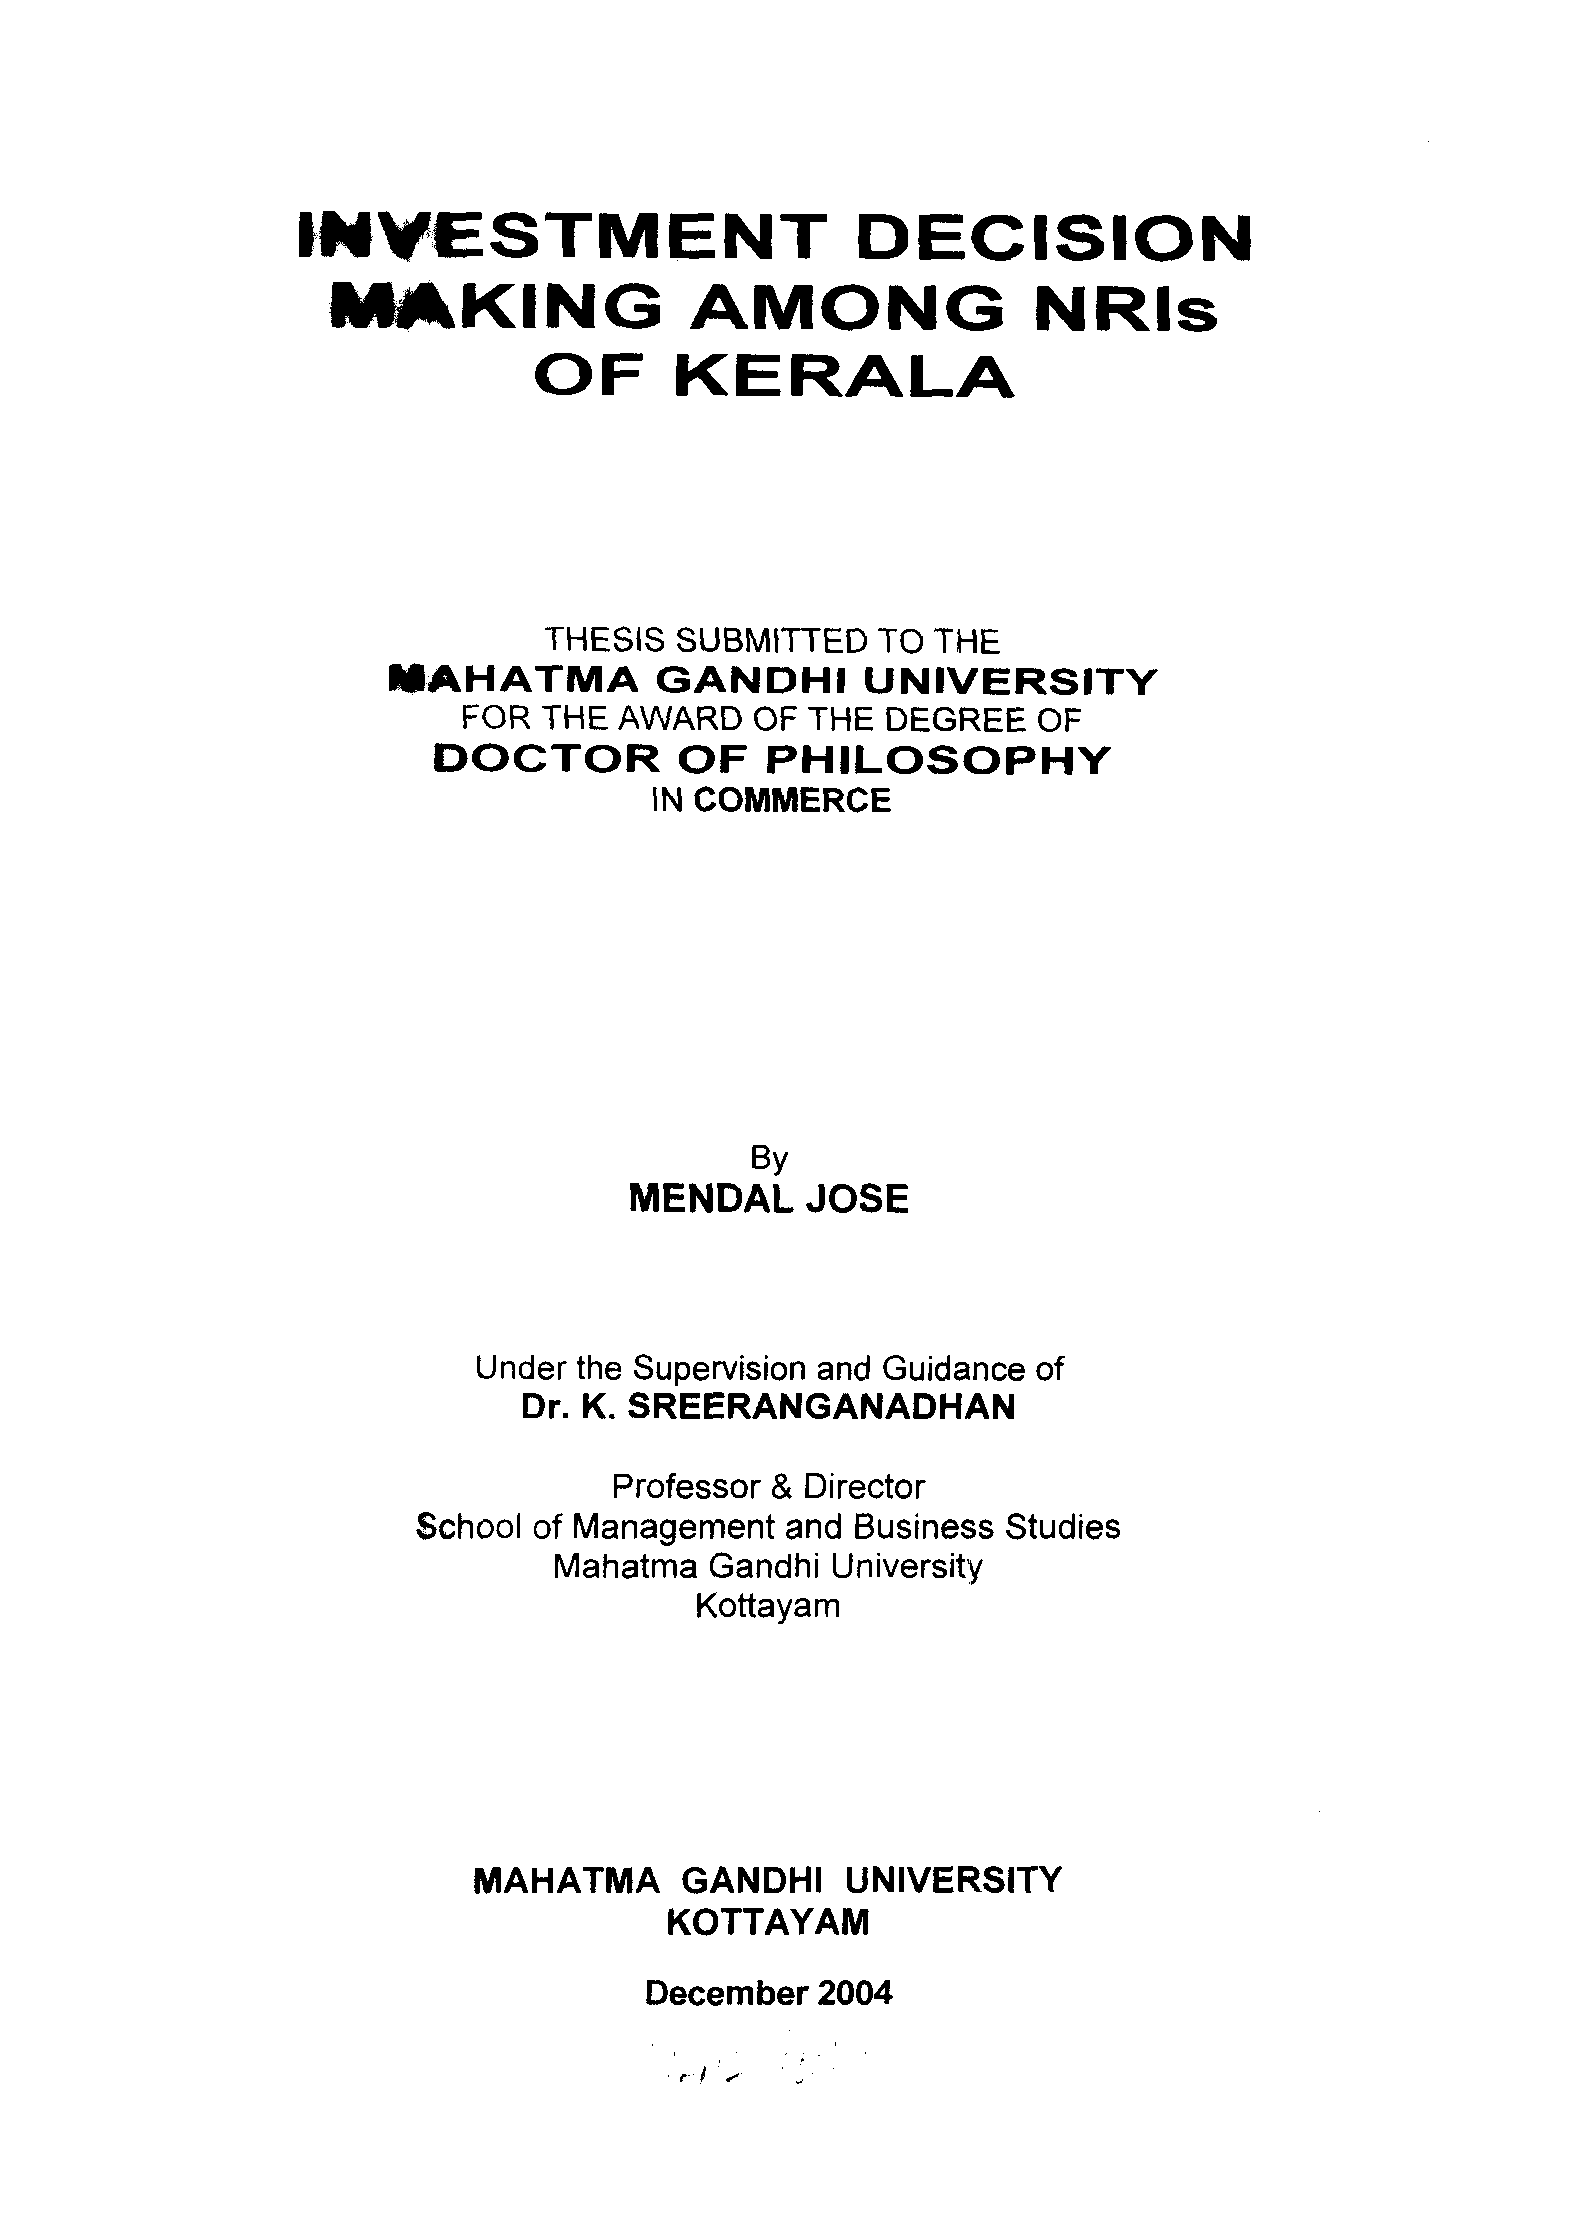 mgu thesis commerce